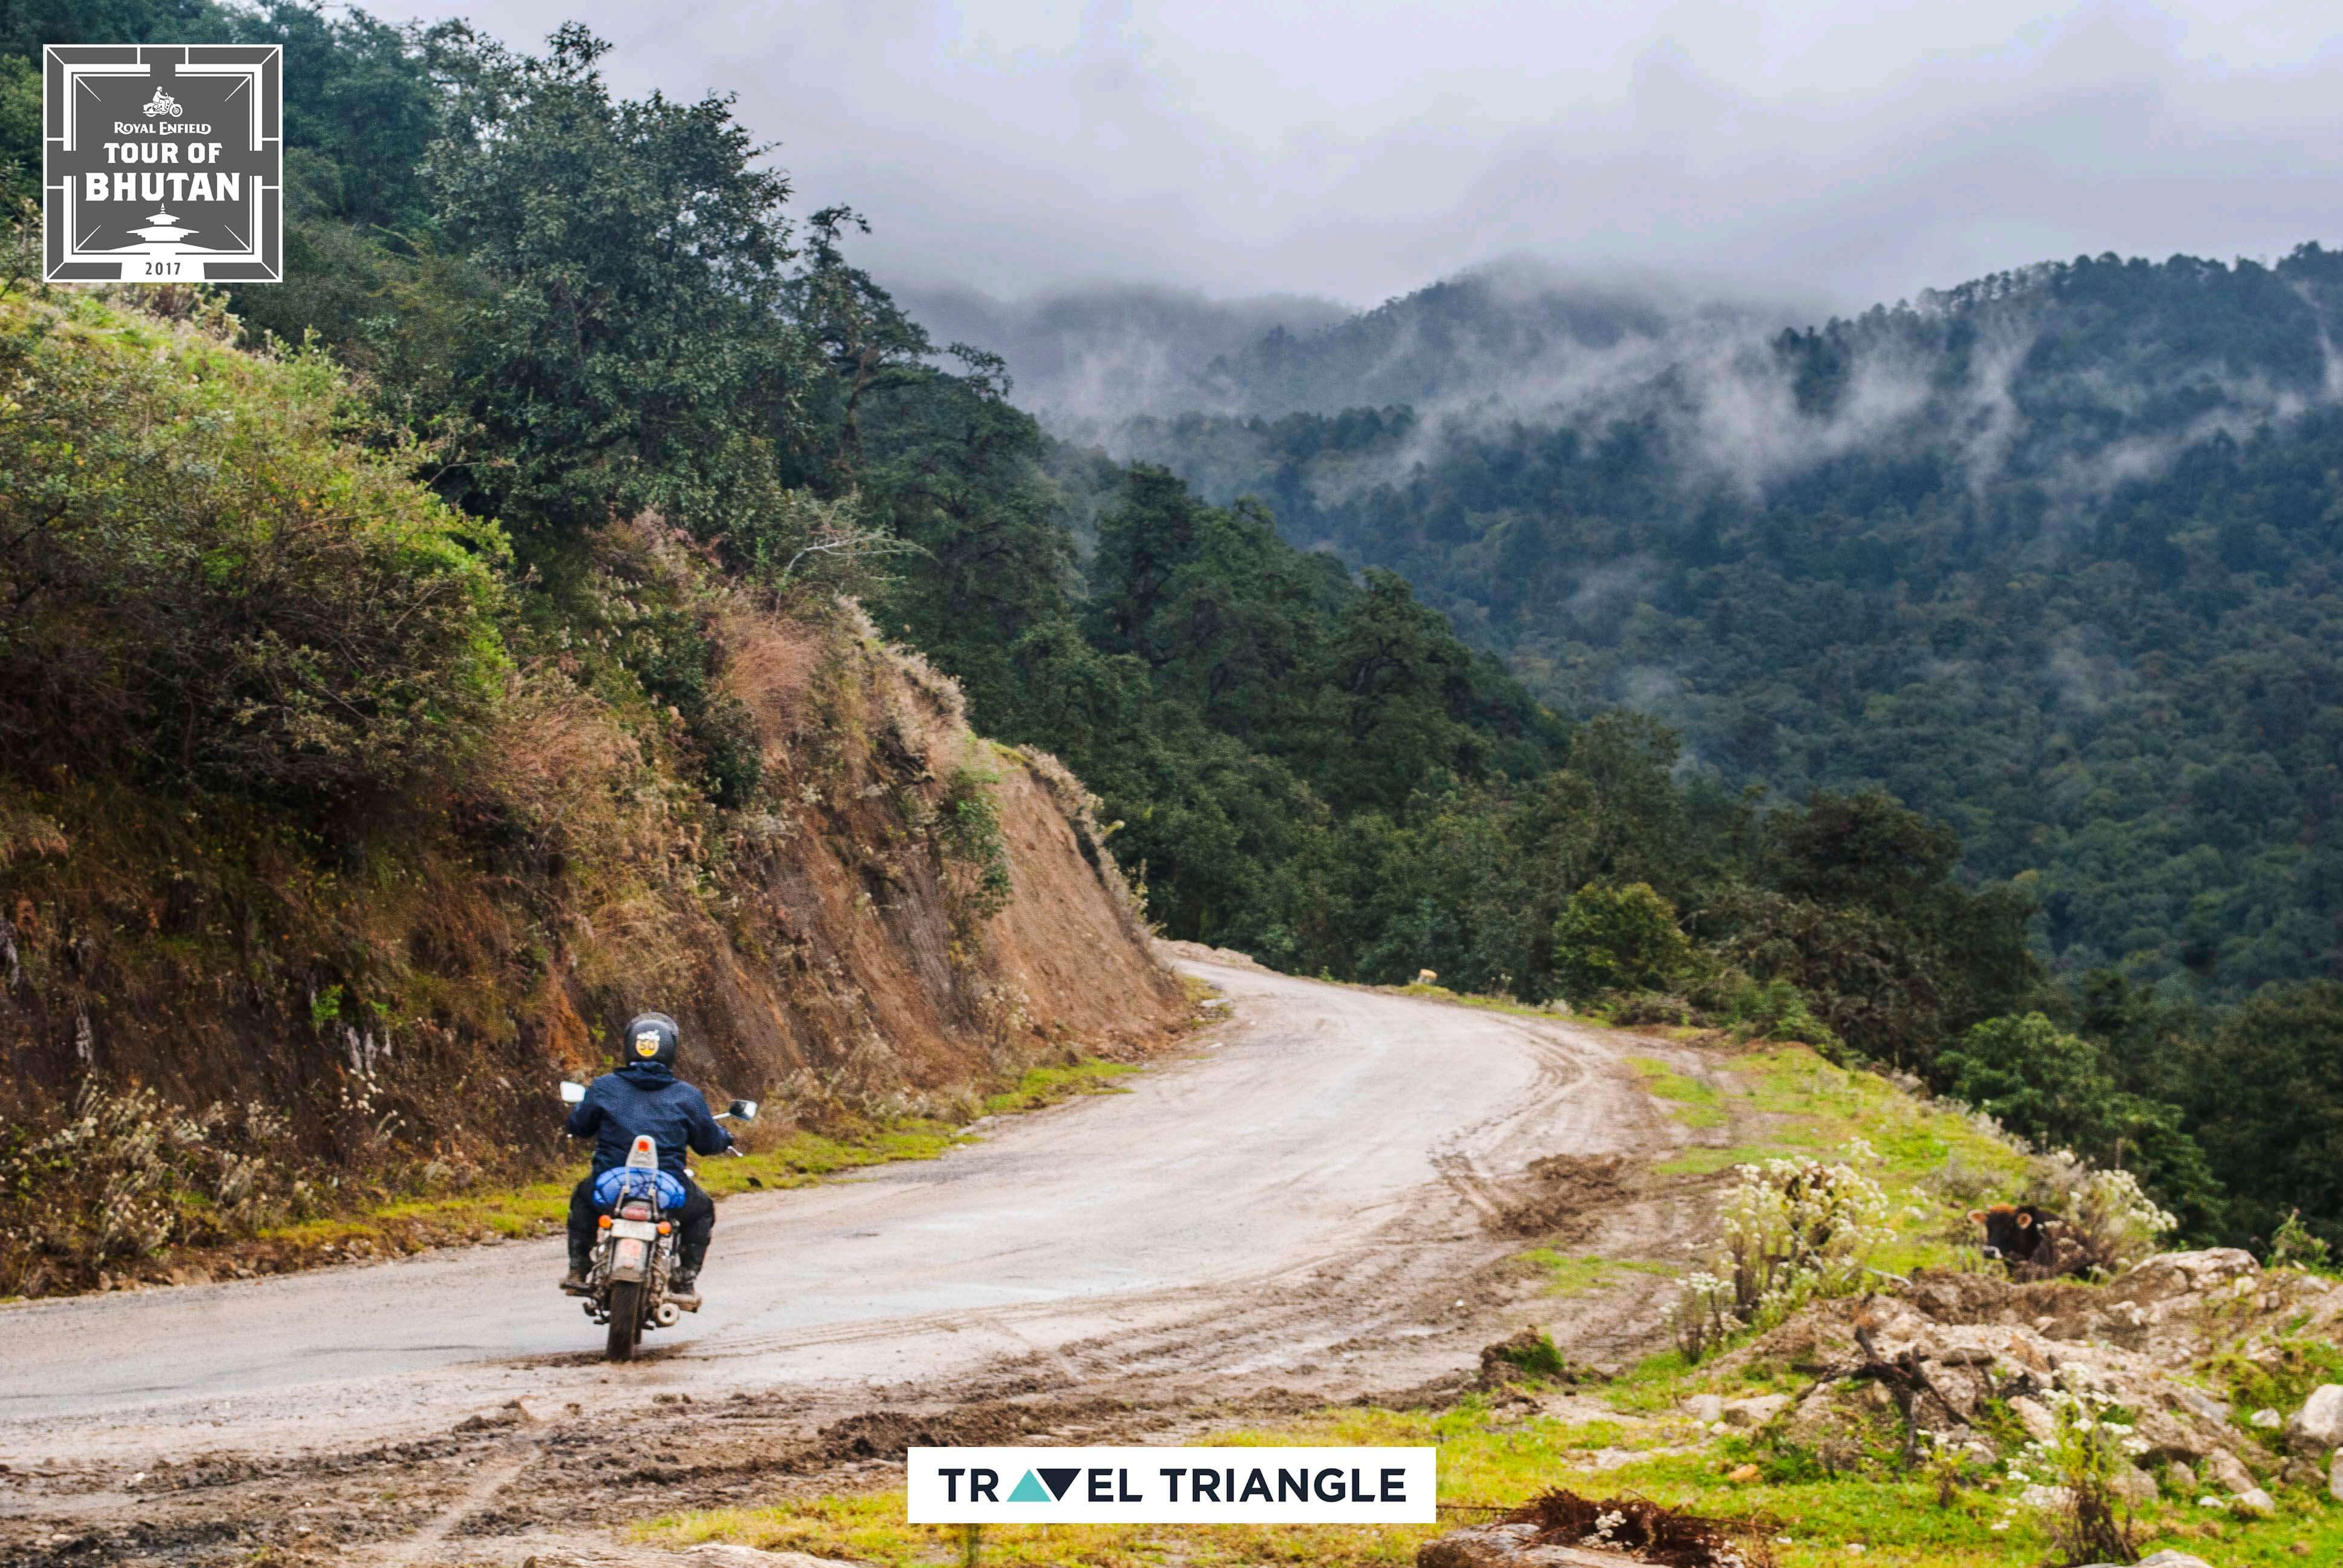 royal enfield india bhutan road trip: the trip ends